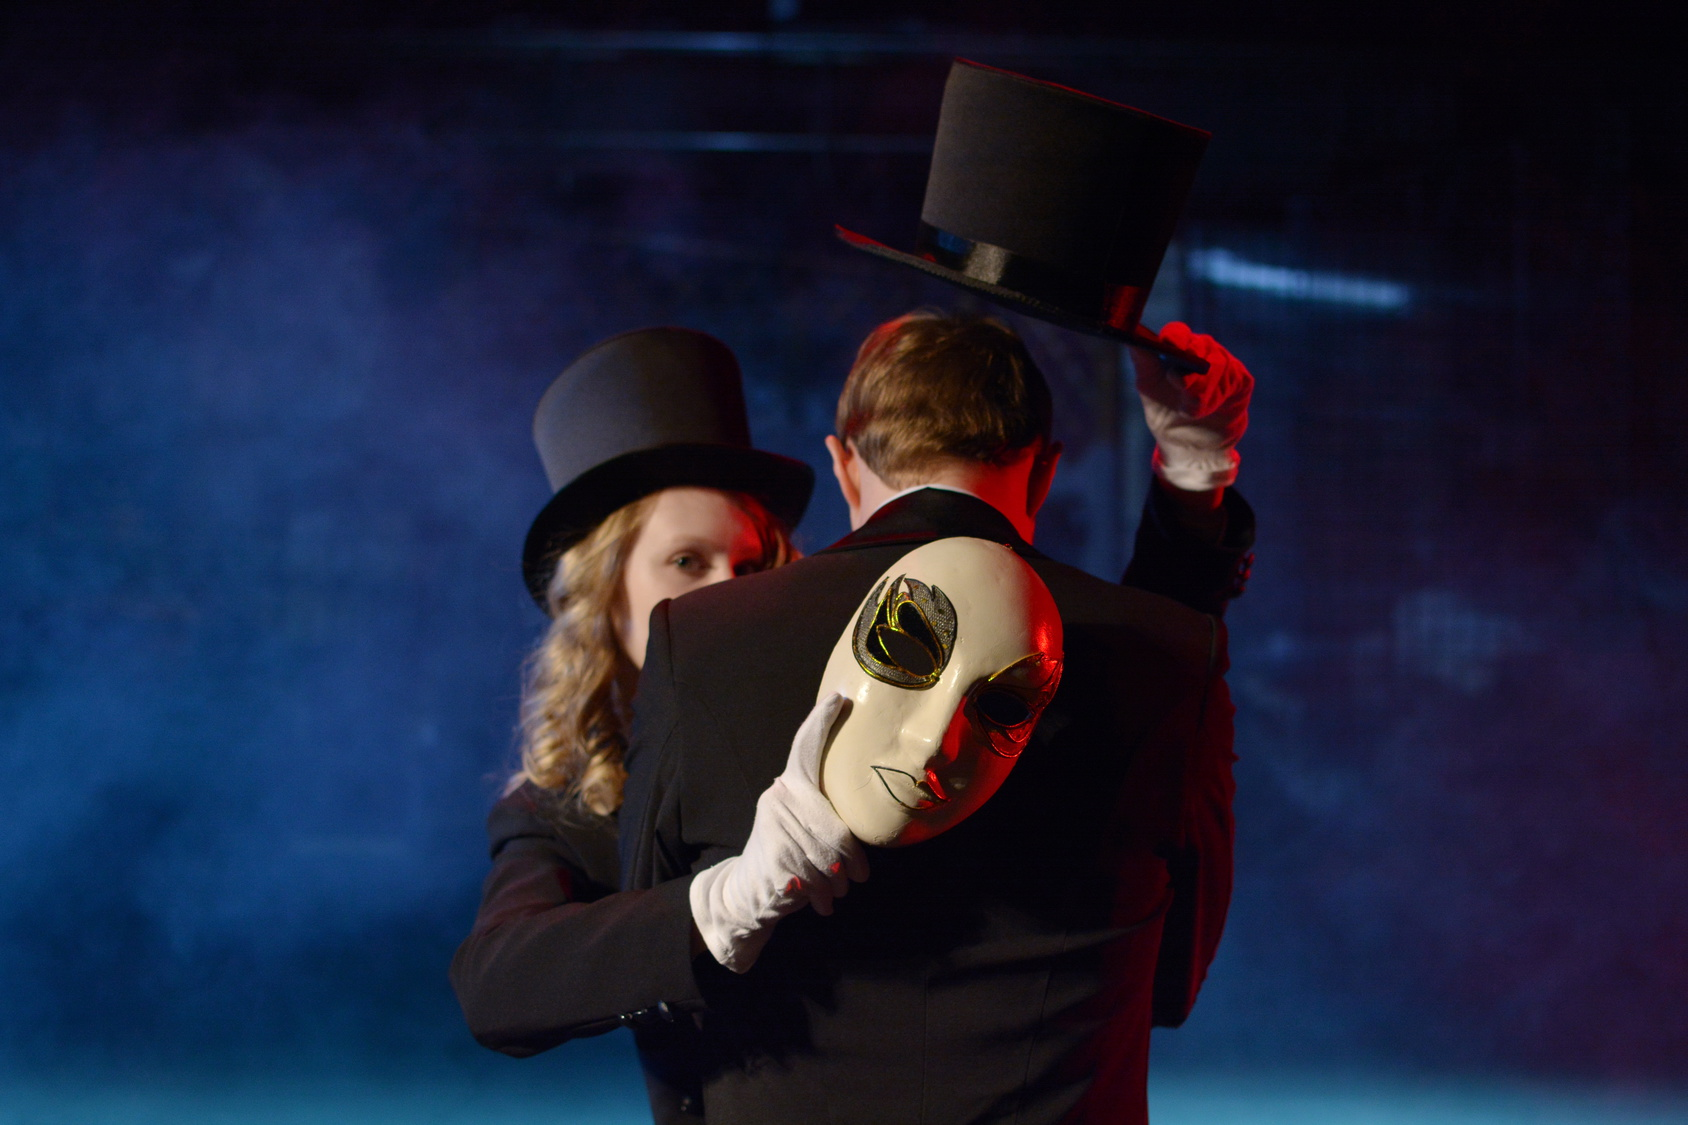 man and woman dancing in tuxedos and holding a theatrical mask